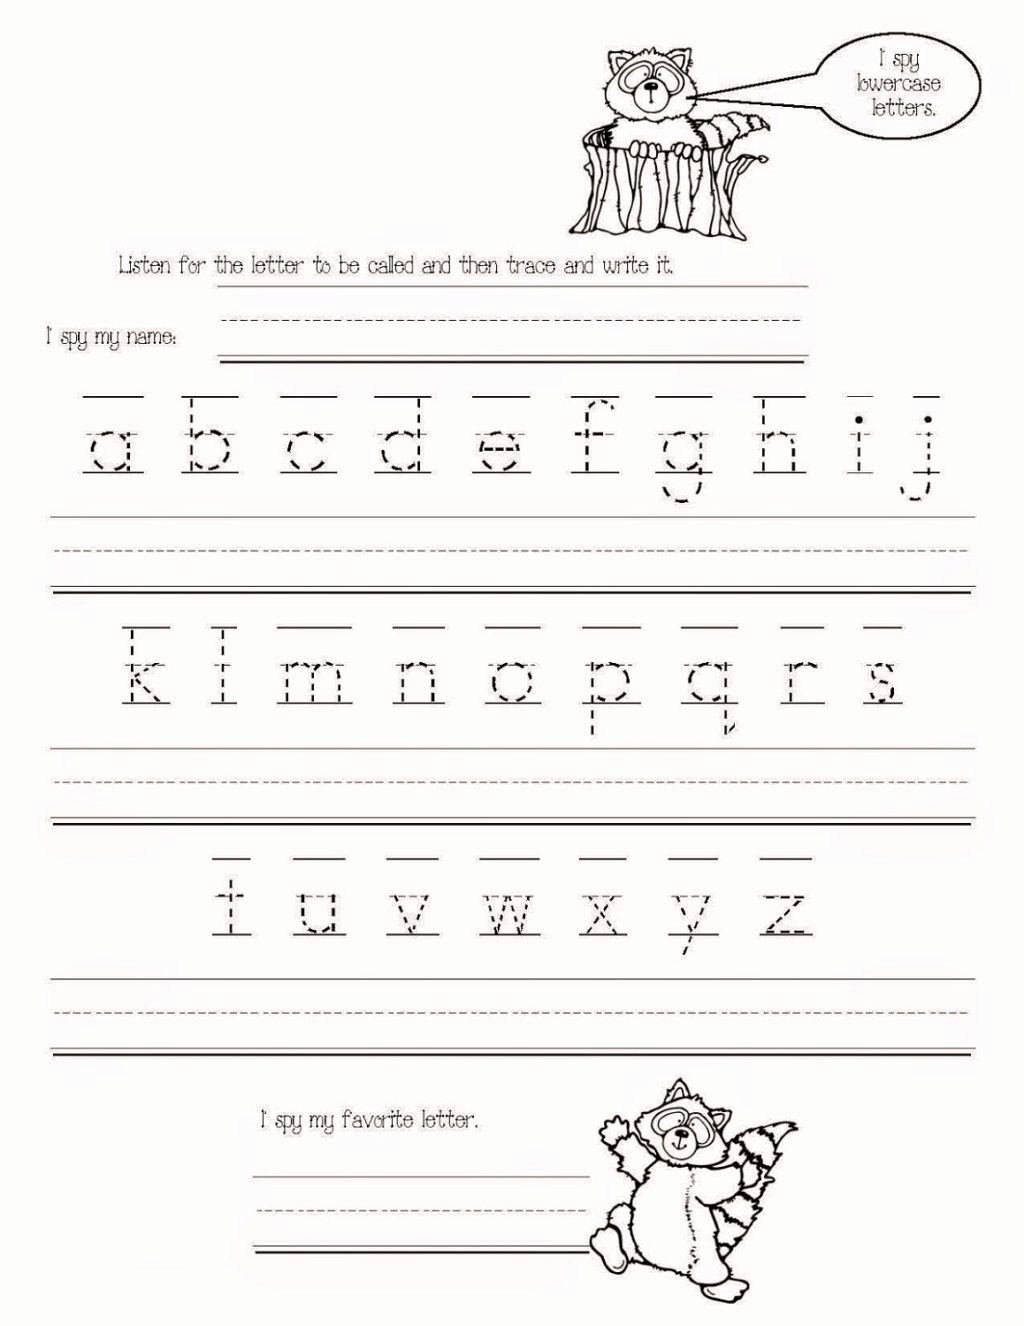 Lowercase Letters Worksheets for Preschoolers Fresh Worksheet Alphabet Worksheets Free Printablergarten Grade